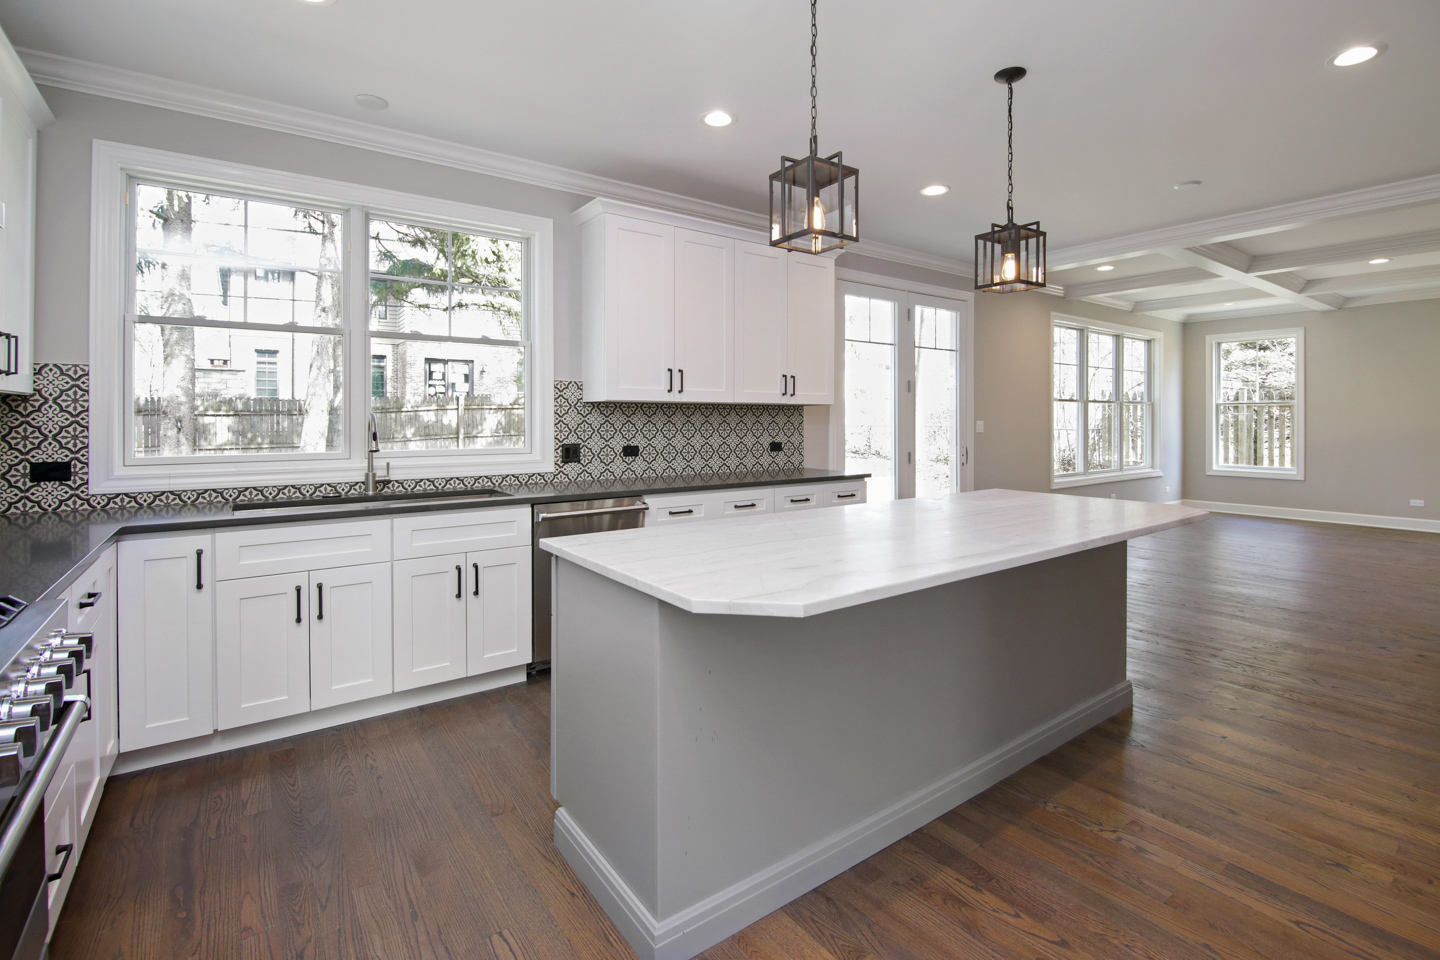 kitchen by AMA Development Deerfield Illinois